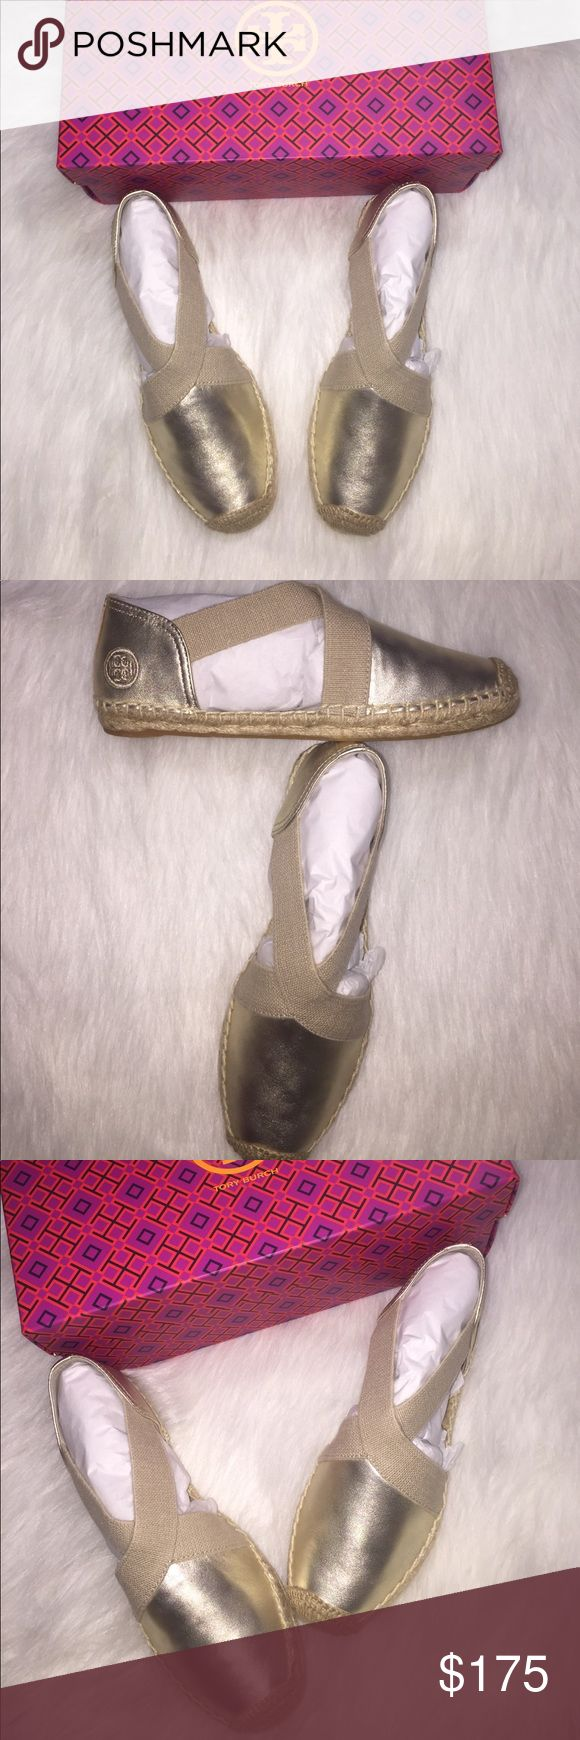 New Tory Burch gold espadrilles Authentic Tory Burch sparkling ✨ ✨✨ gold espadrilles shoes. Criss cross across vamp with sides open. Dust bag and box included. Tory Burch Shoes Espadrilles